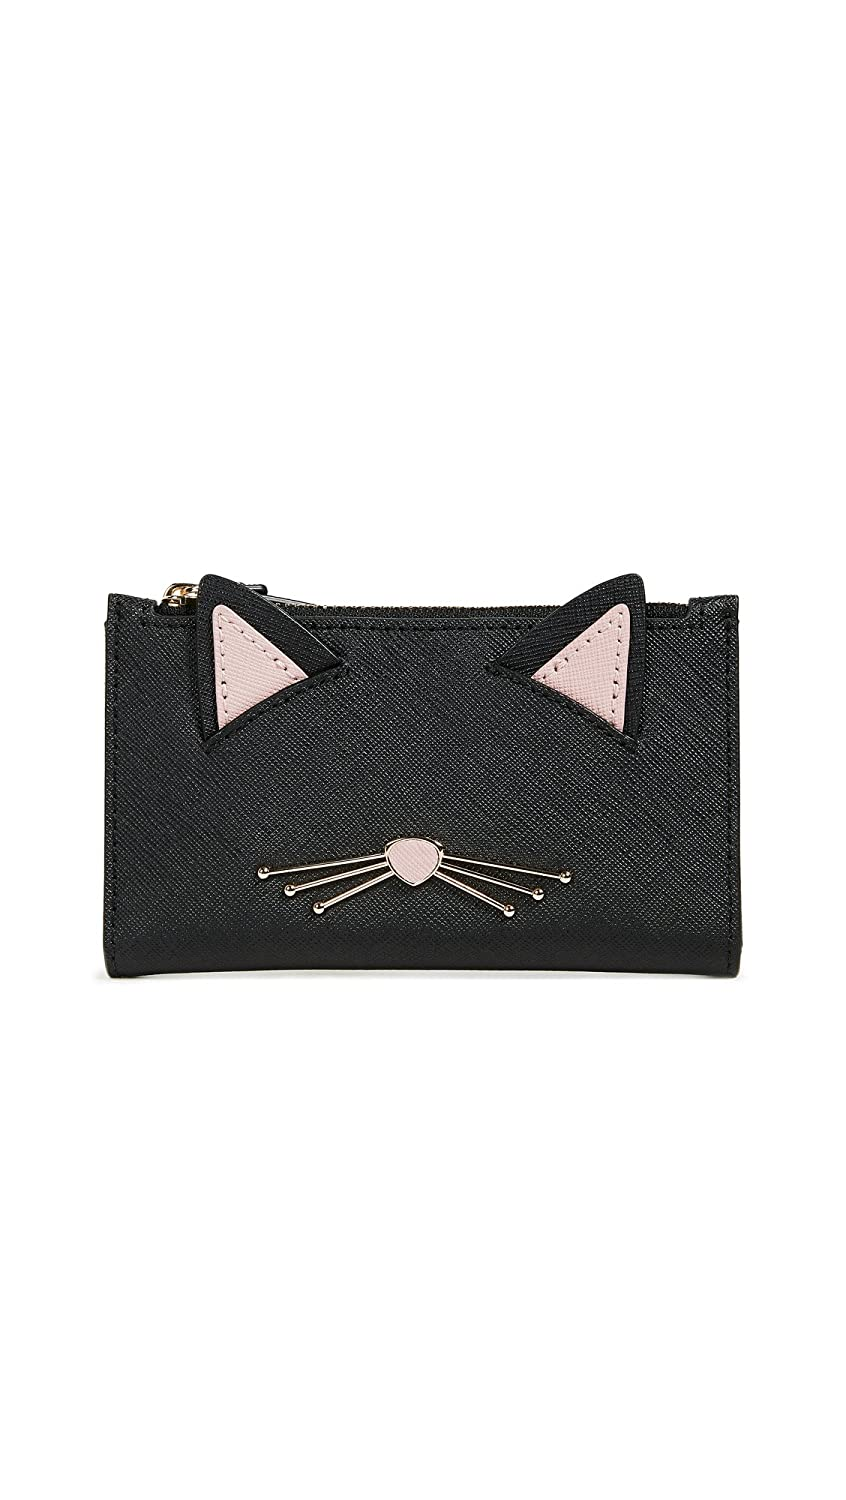 Kate Spade New York Women's Cat's Meow Mikey Cat Wallet Black Multi One Size